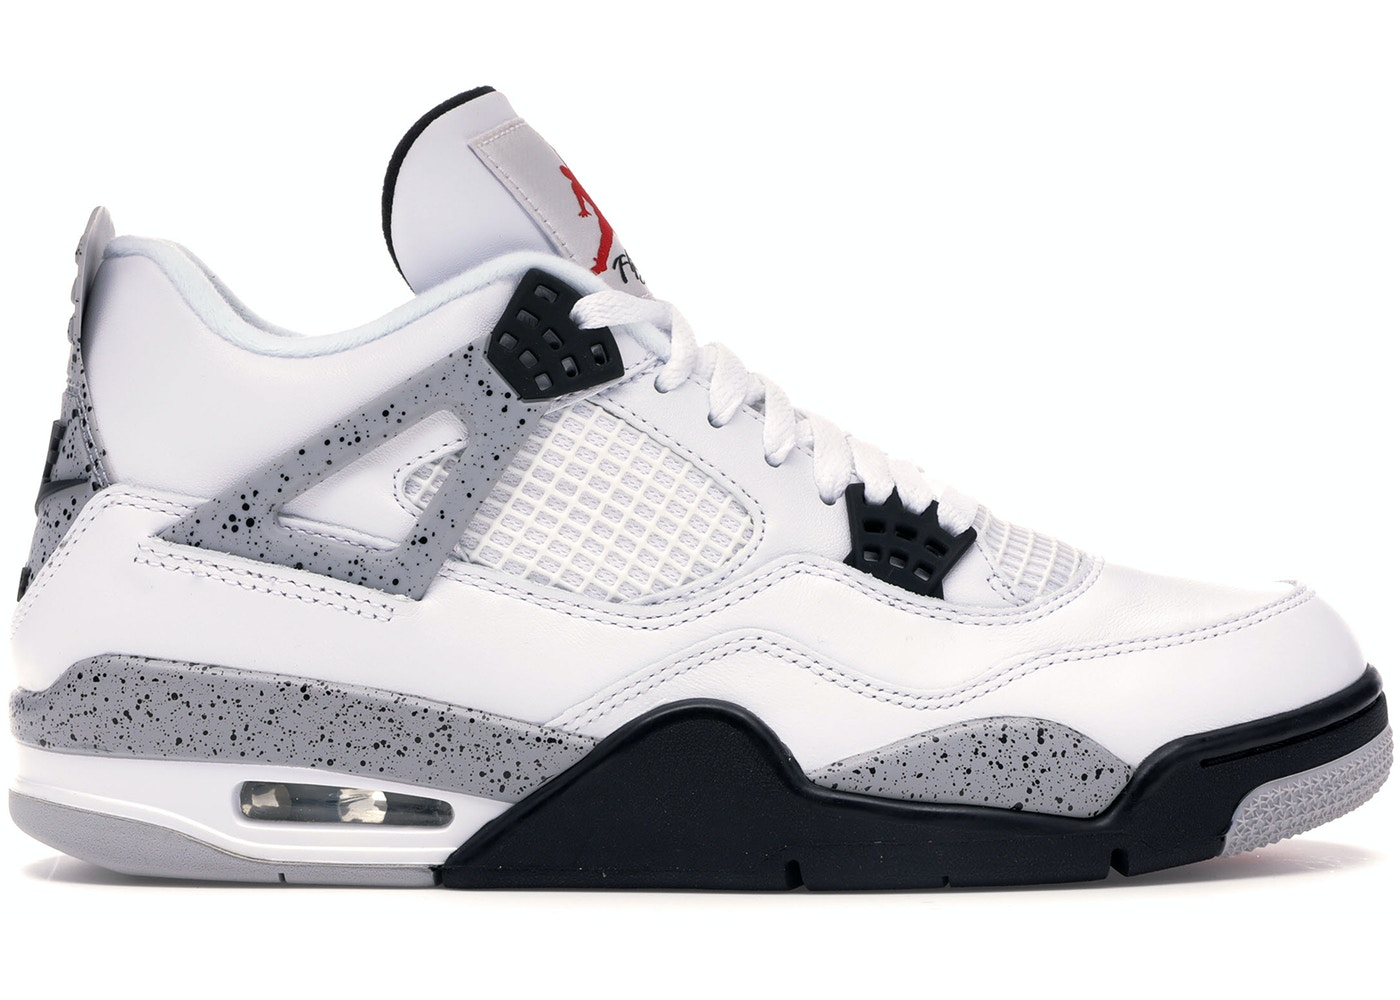 half off cf4de 00604 Jordan 4 Retro White Cement (2016)